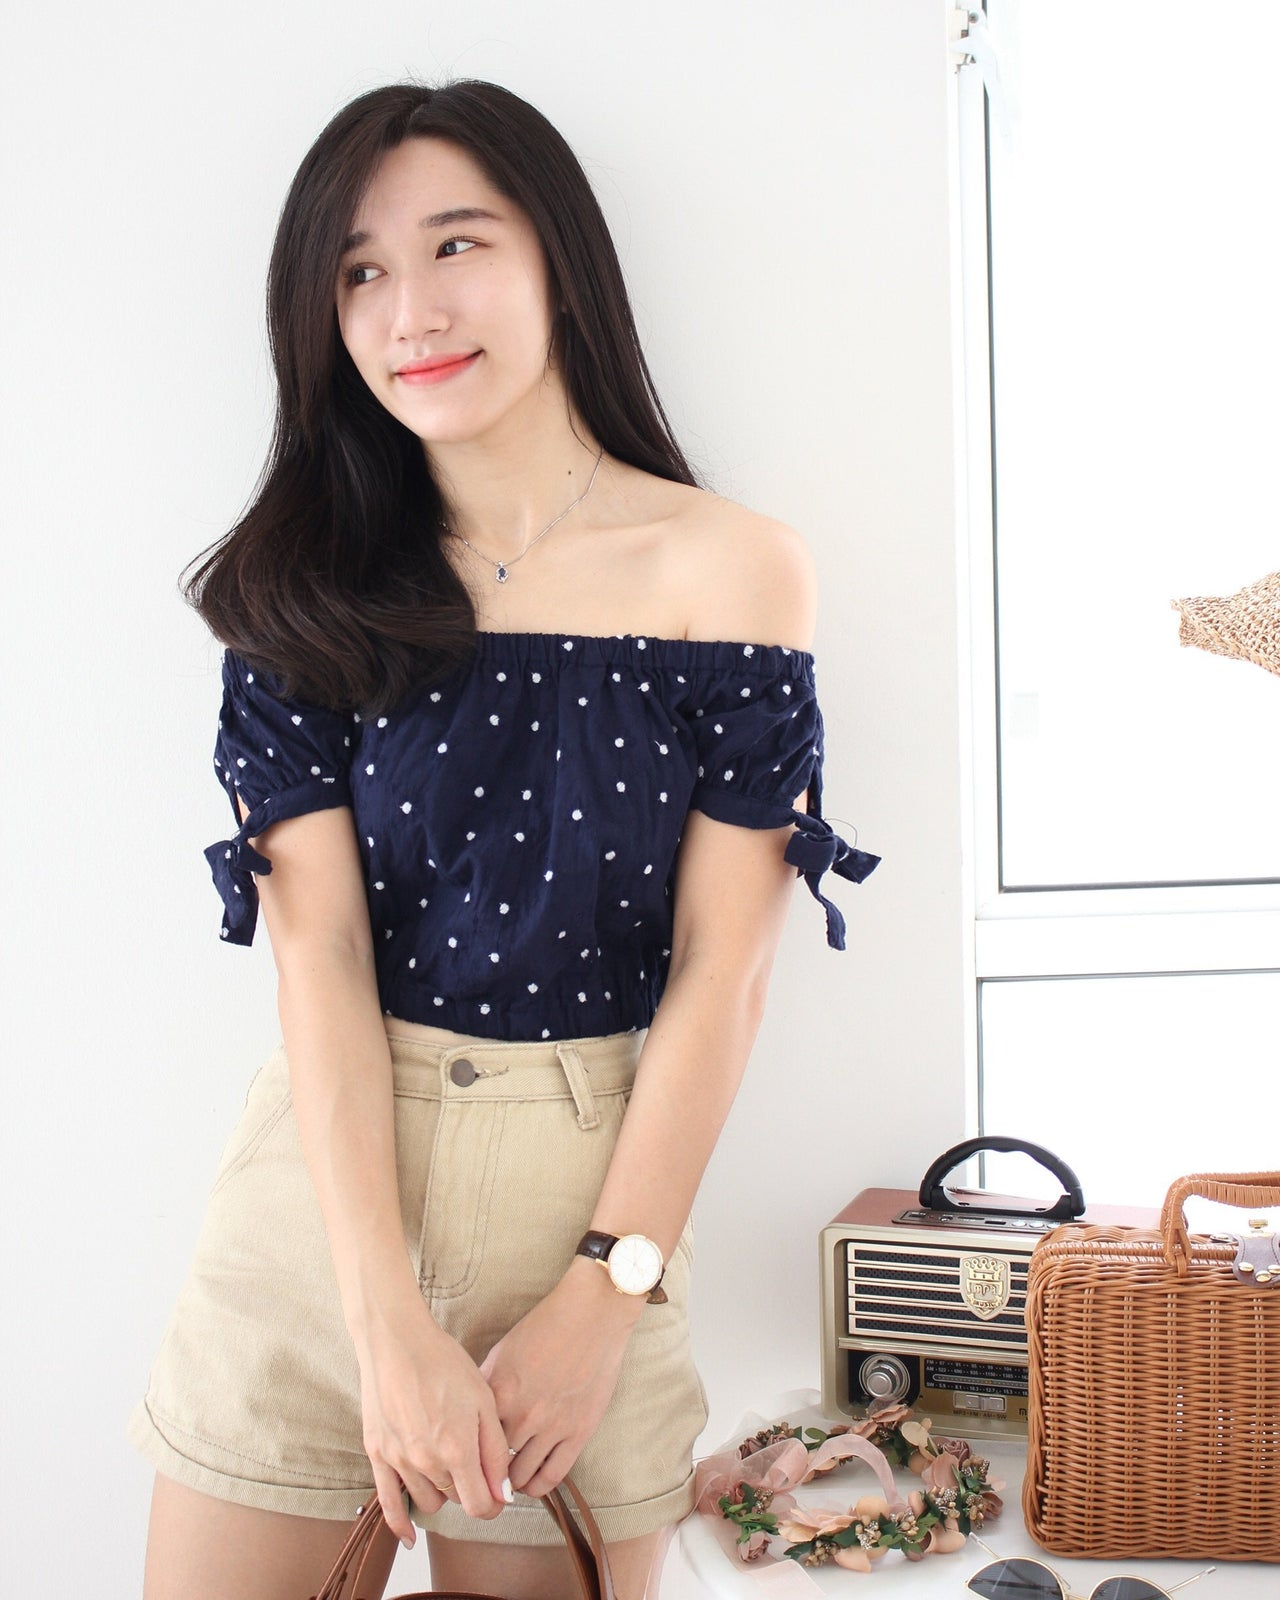 6IXTY 8IGHTY Off Shoulder Top - LovelyMadness Clothing Malaysia